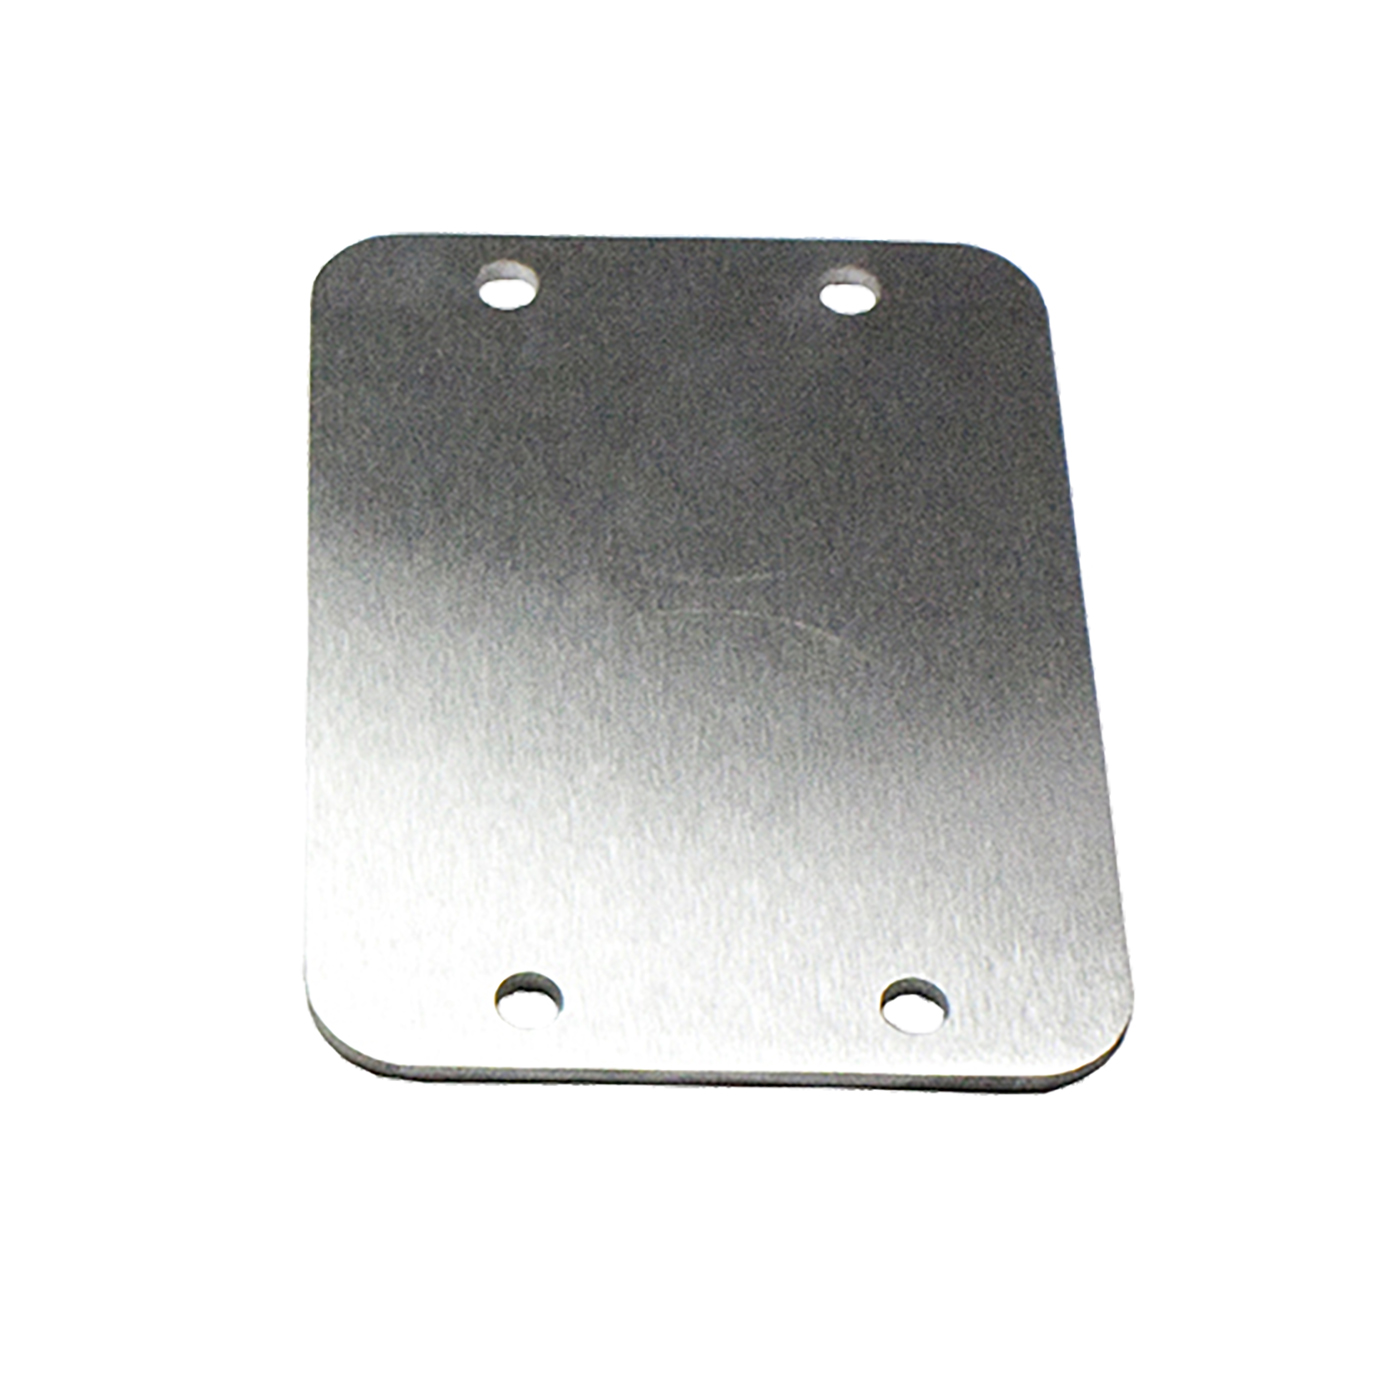 YA W39147 - Dana 30 Disconnect Block-off Plate for disconnect removal.